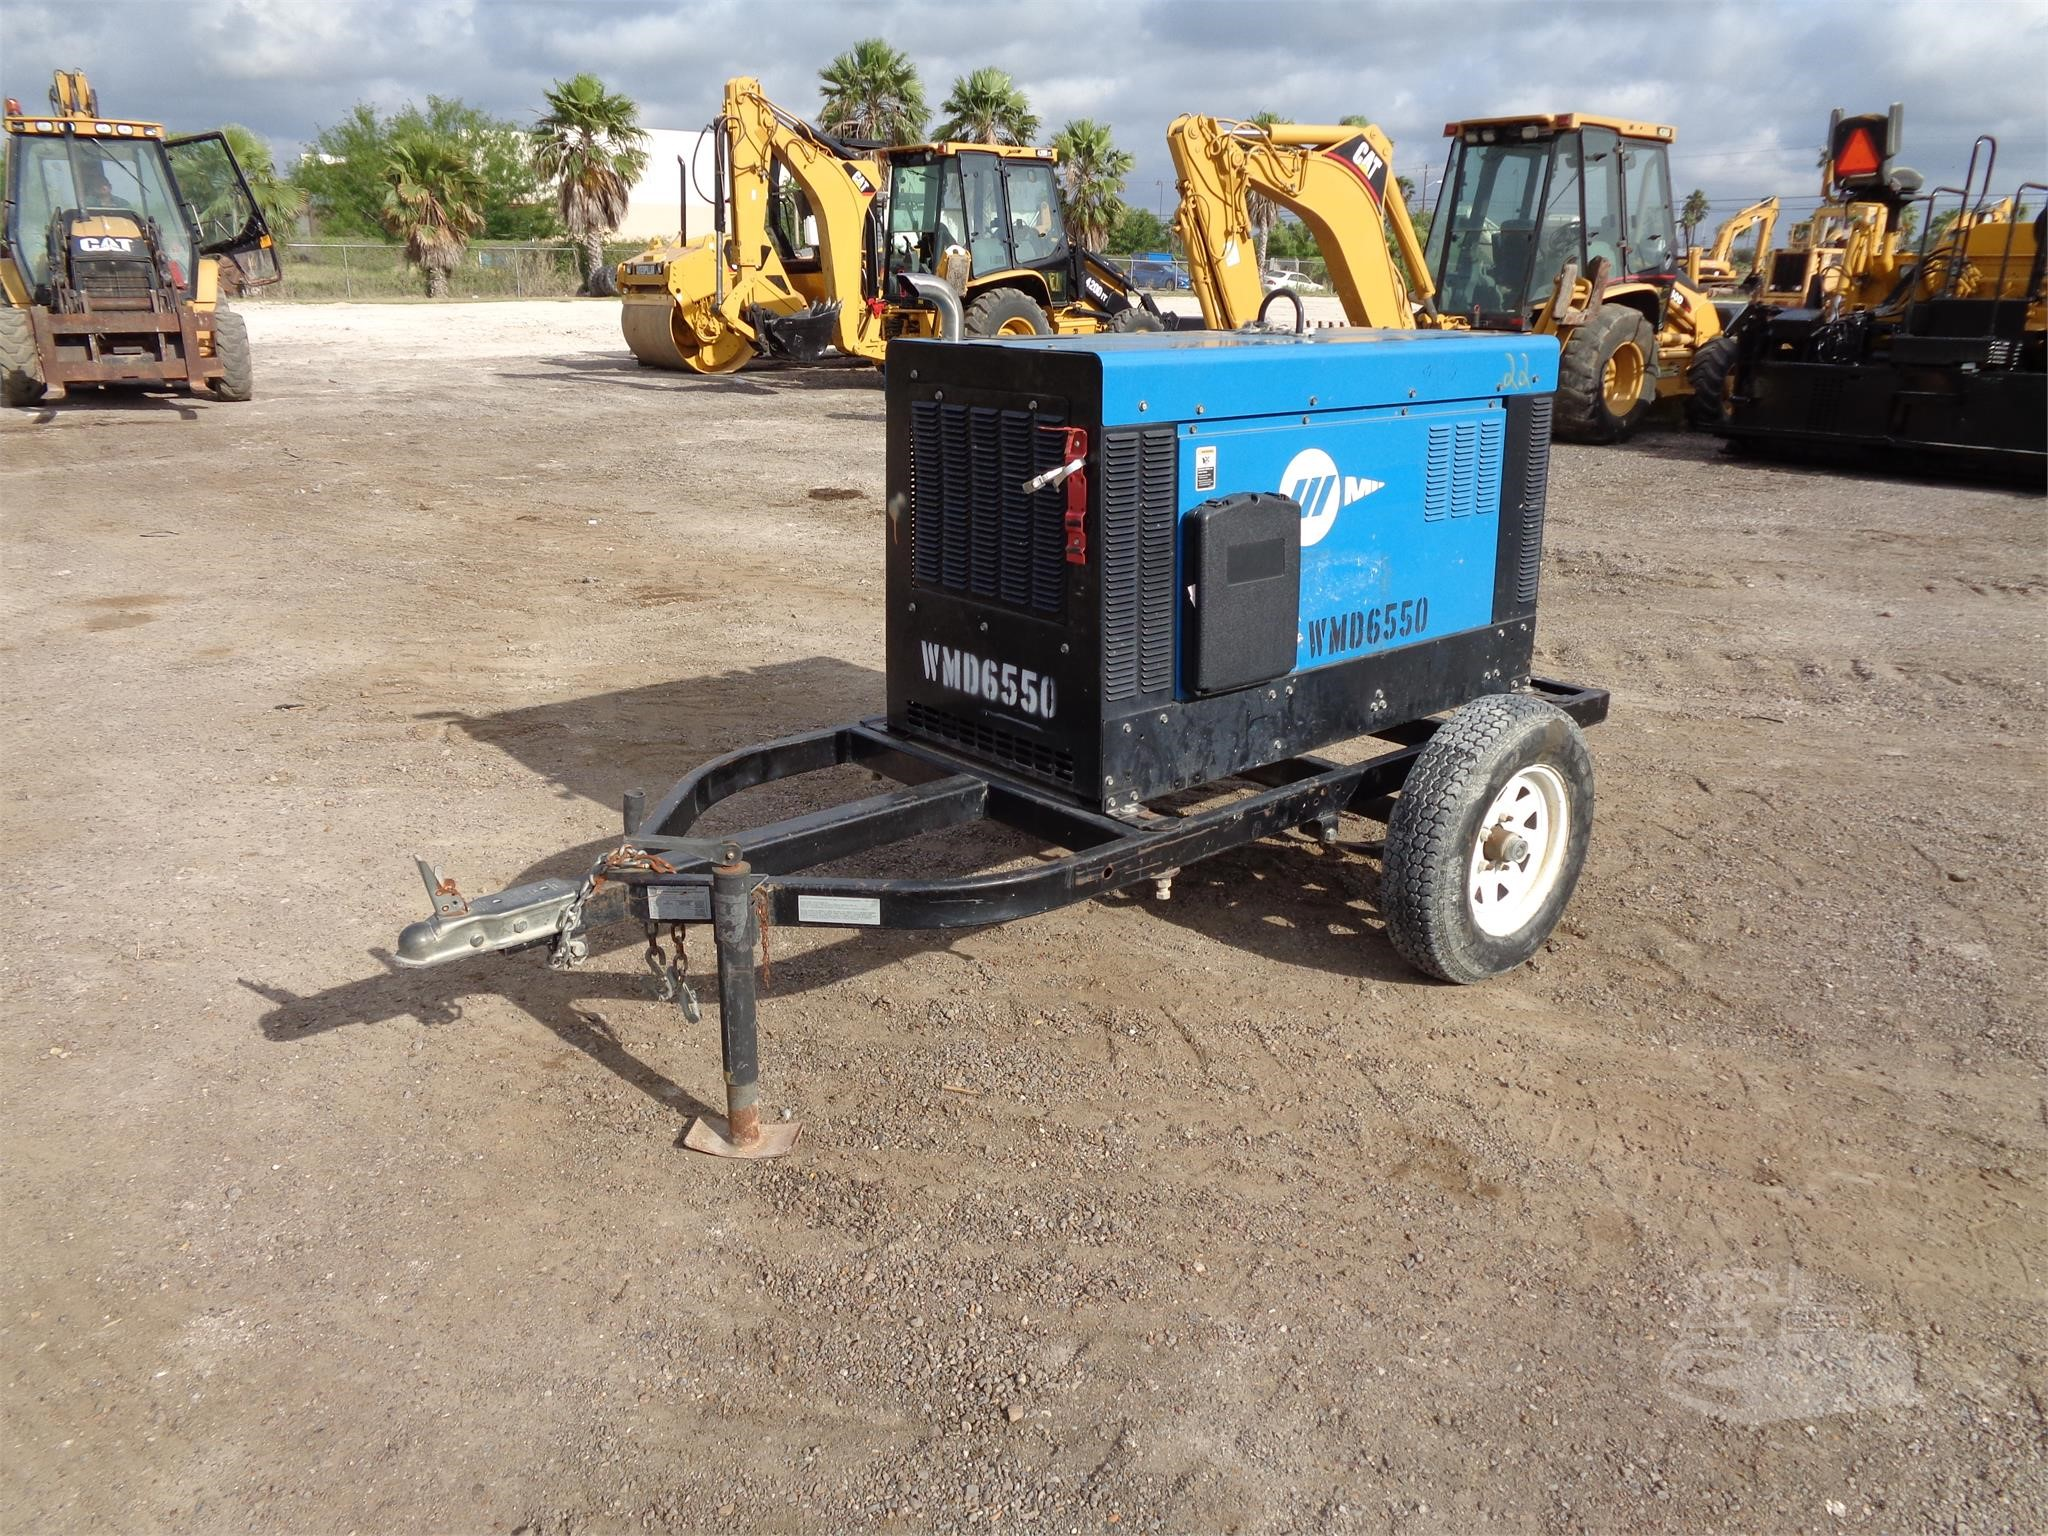 Miller Other Items For Sale In Texas 2 Listings Machinerytrader Com Page 1 Of 1